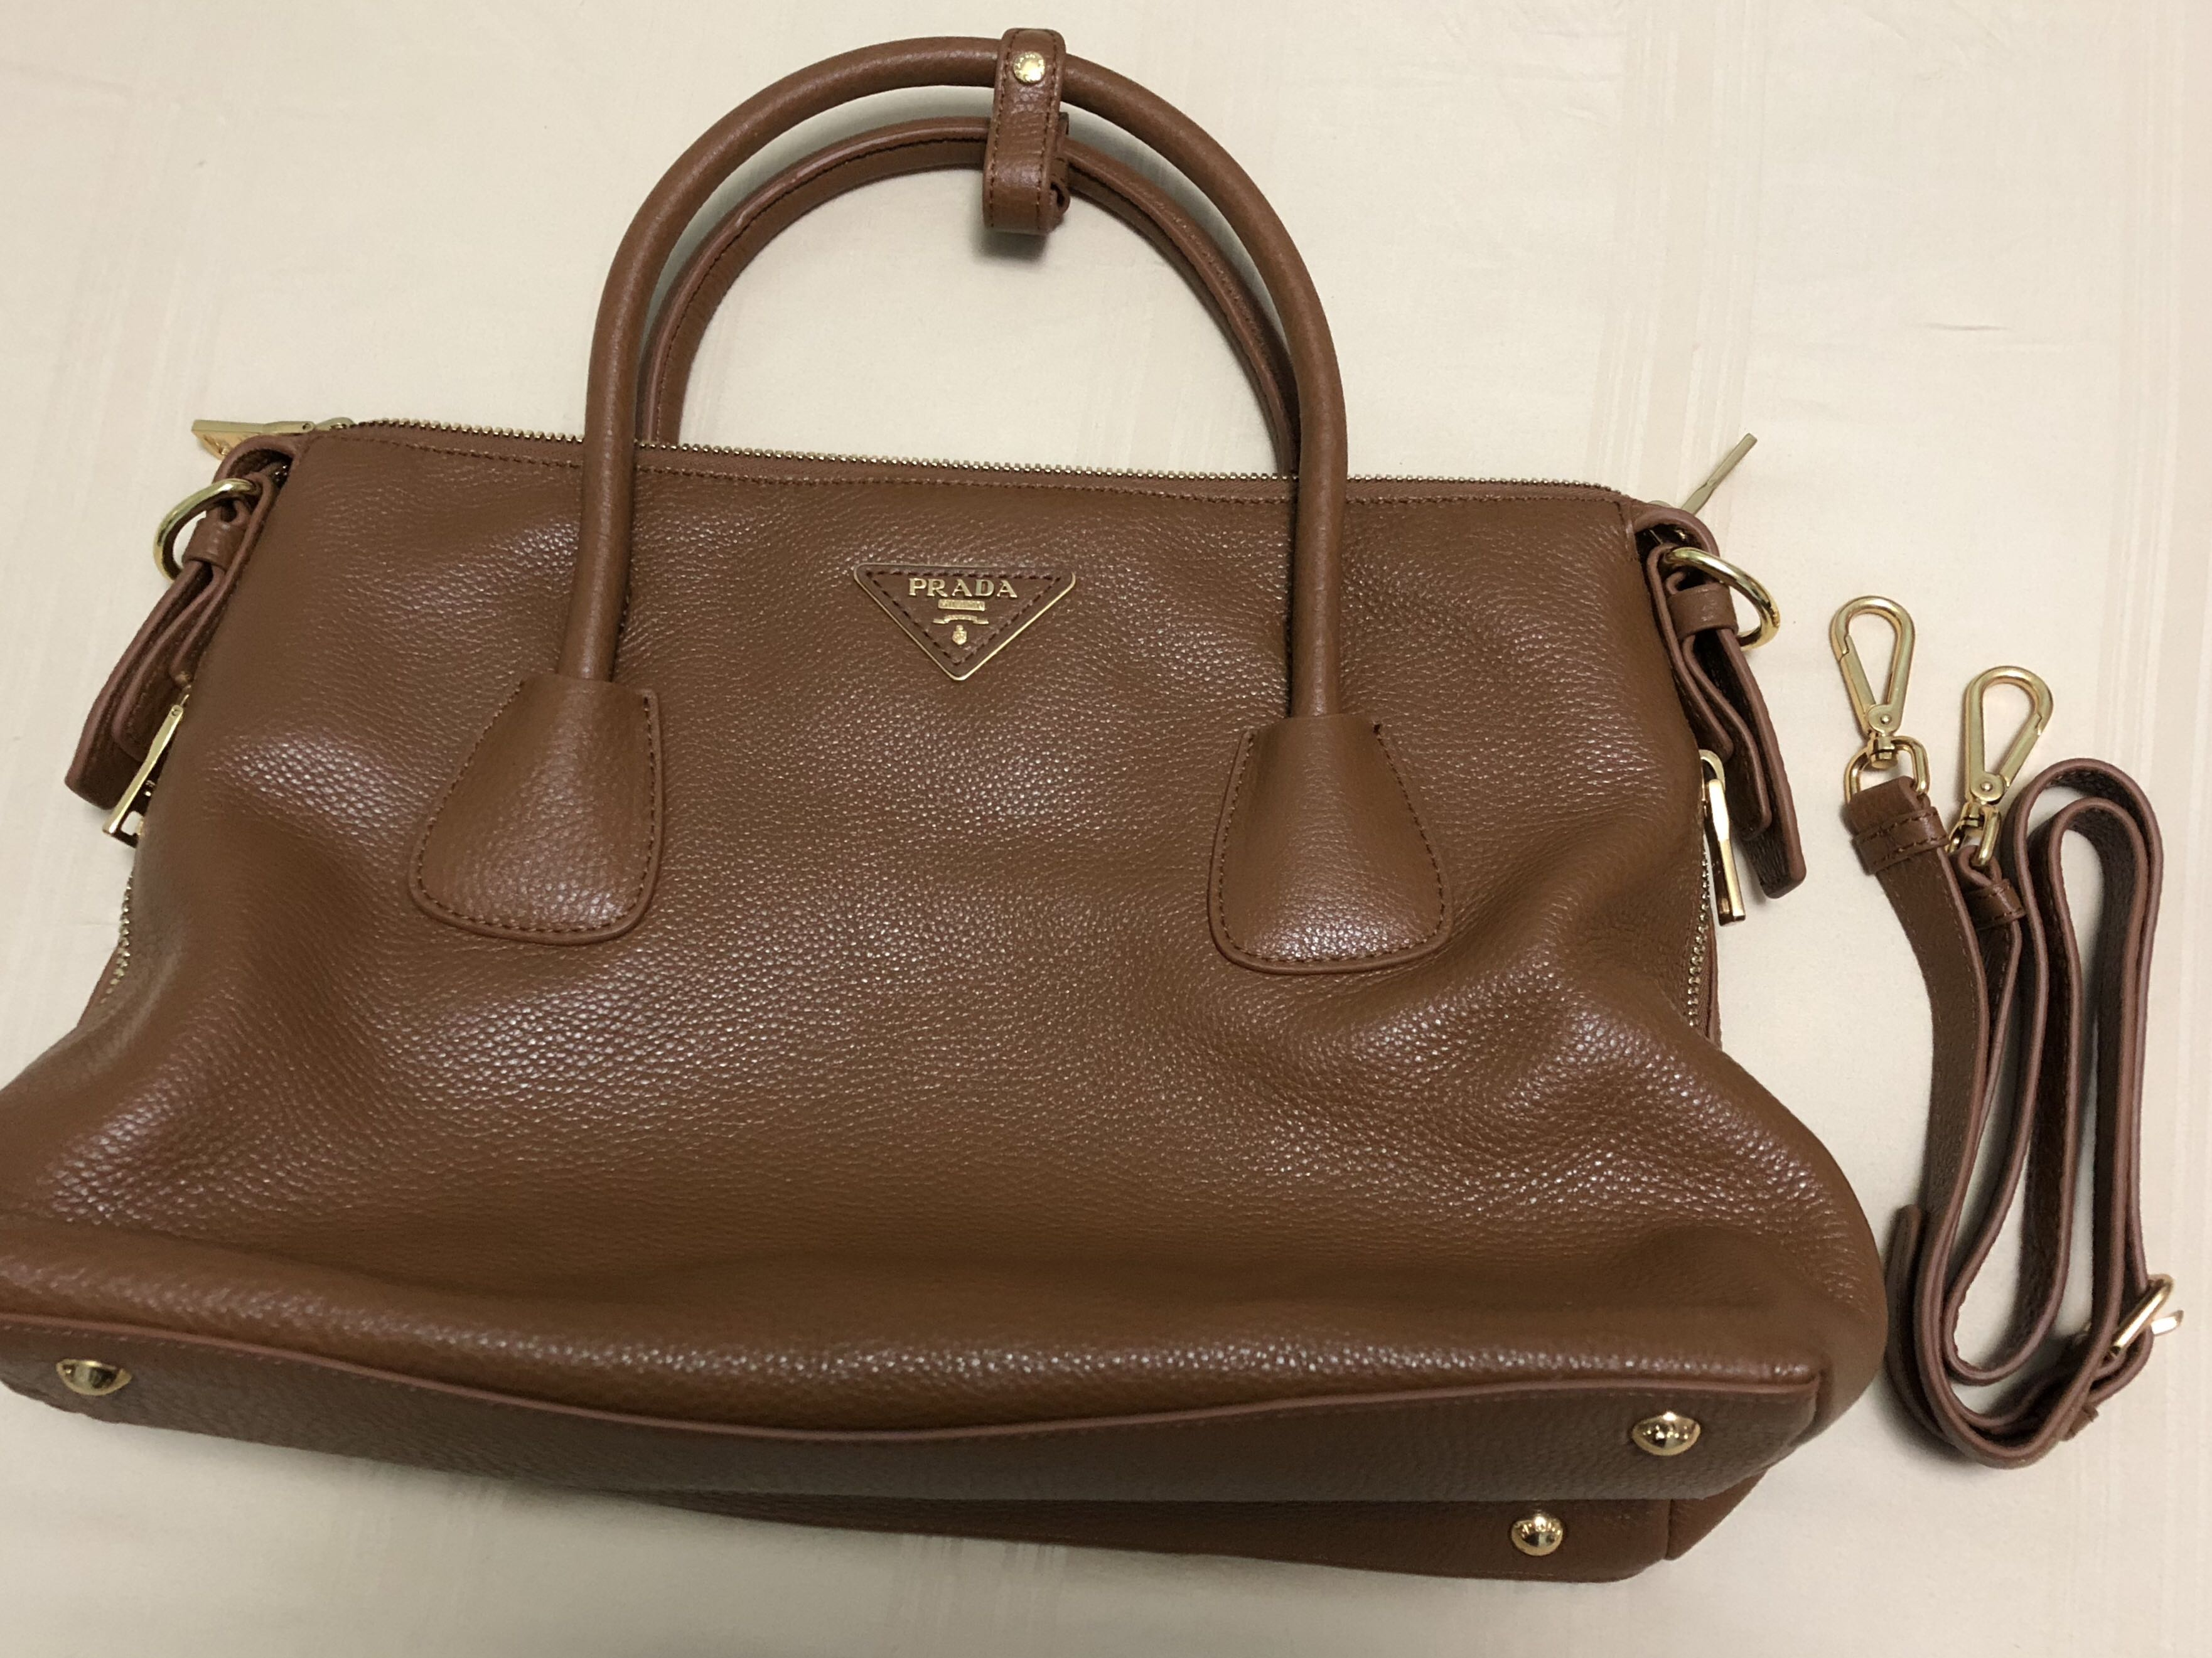 7830601be0f5 ... inexpensive prada medium brown leather shoulder bag luxury bags wallets  on 018a1 2acfd